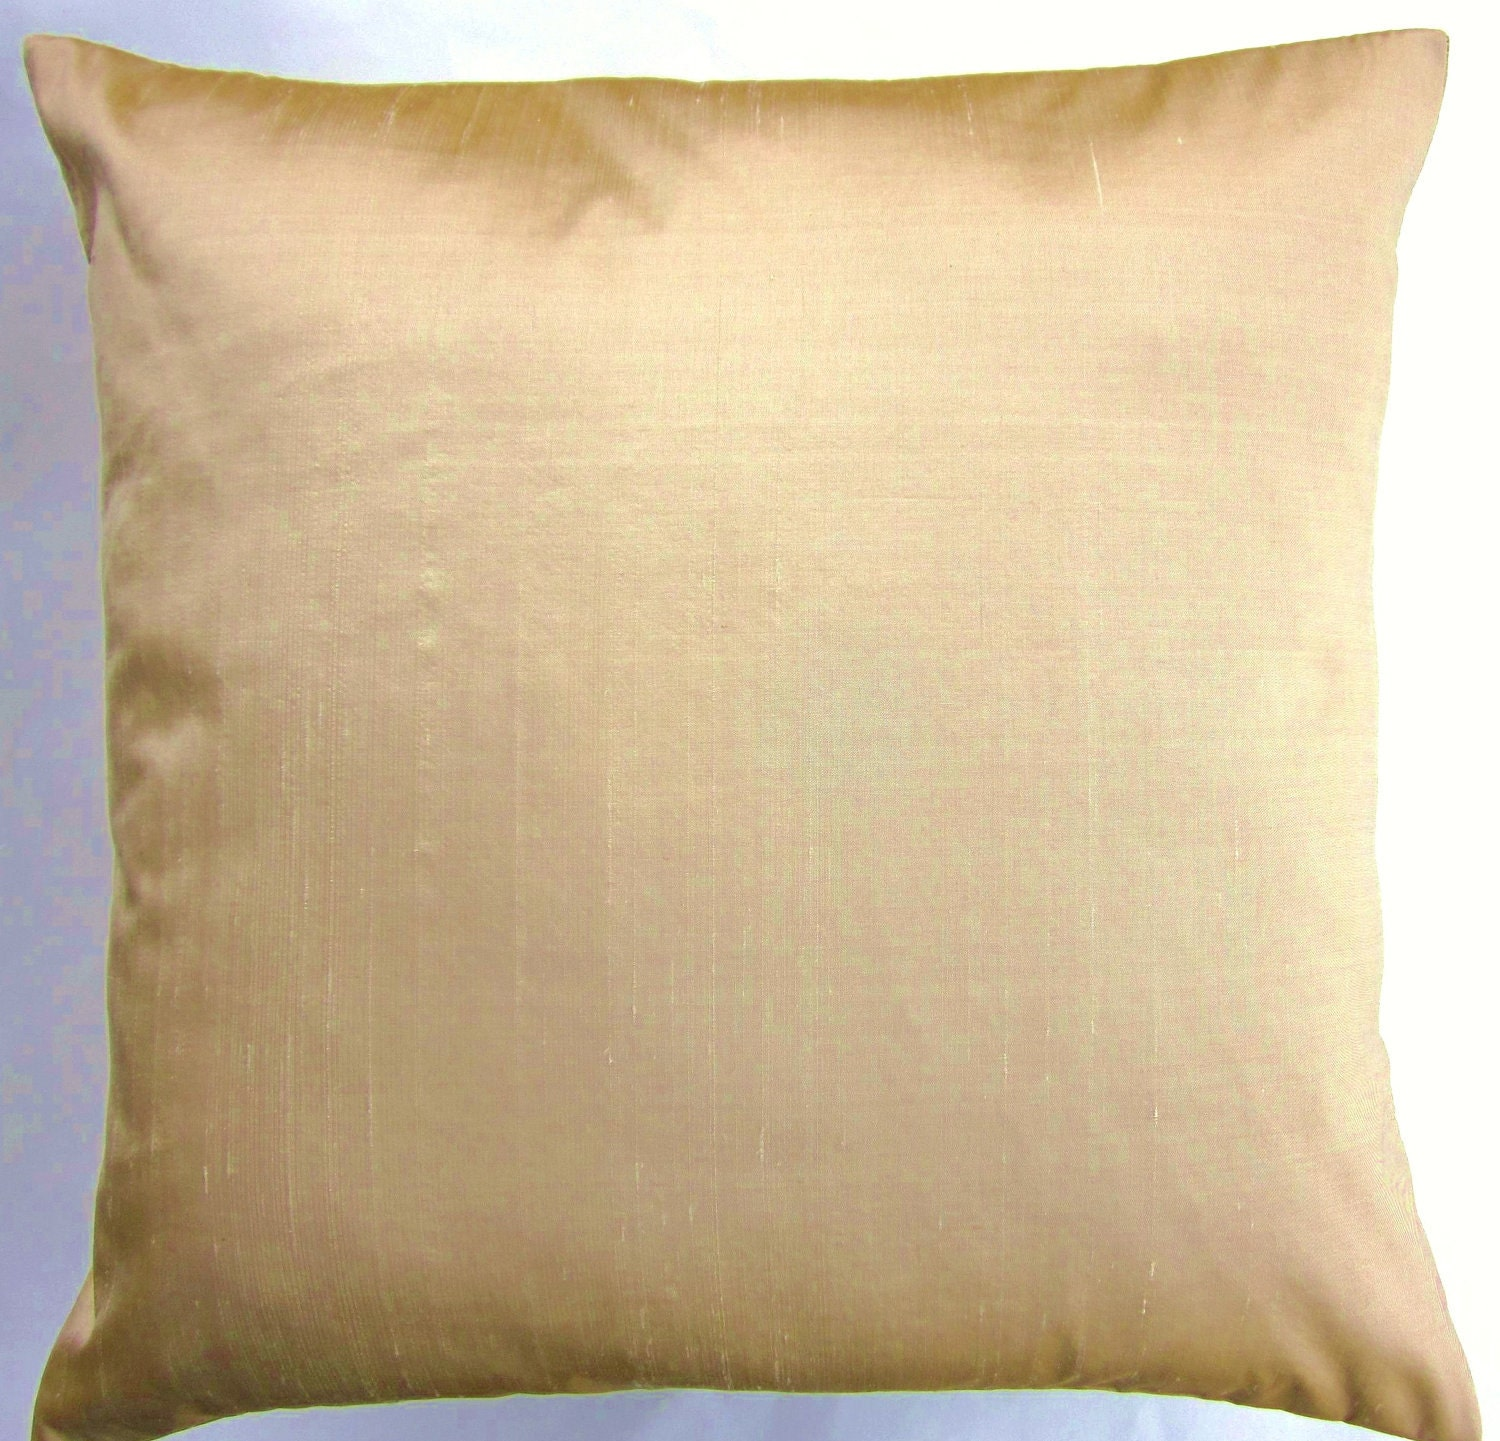 Throw Pillows Gif : Gold Silk Throw Pillow Cover Simply Silk Light Gold Cushion